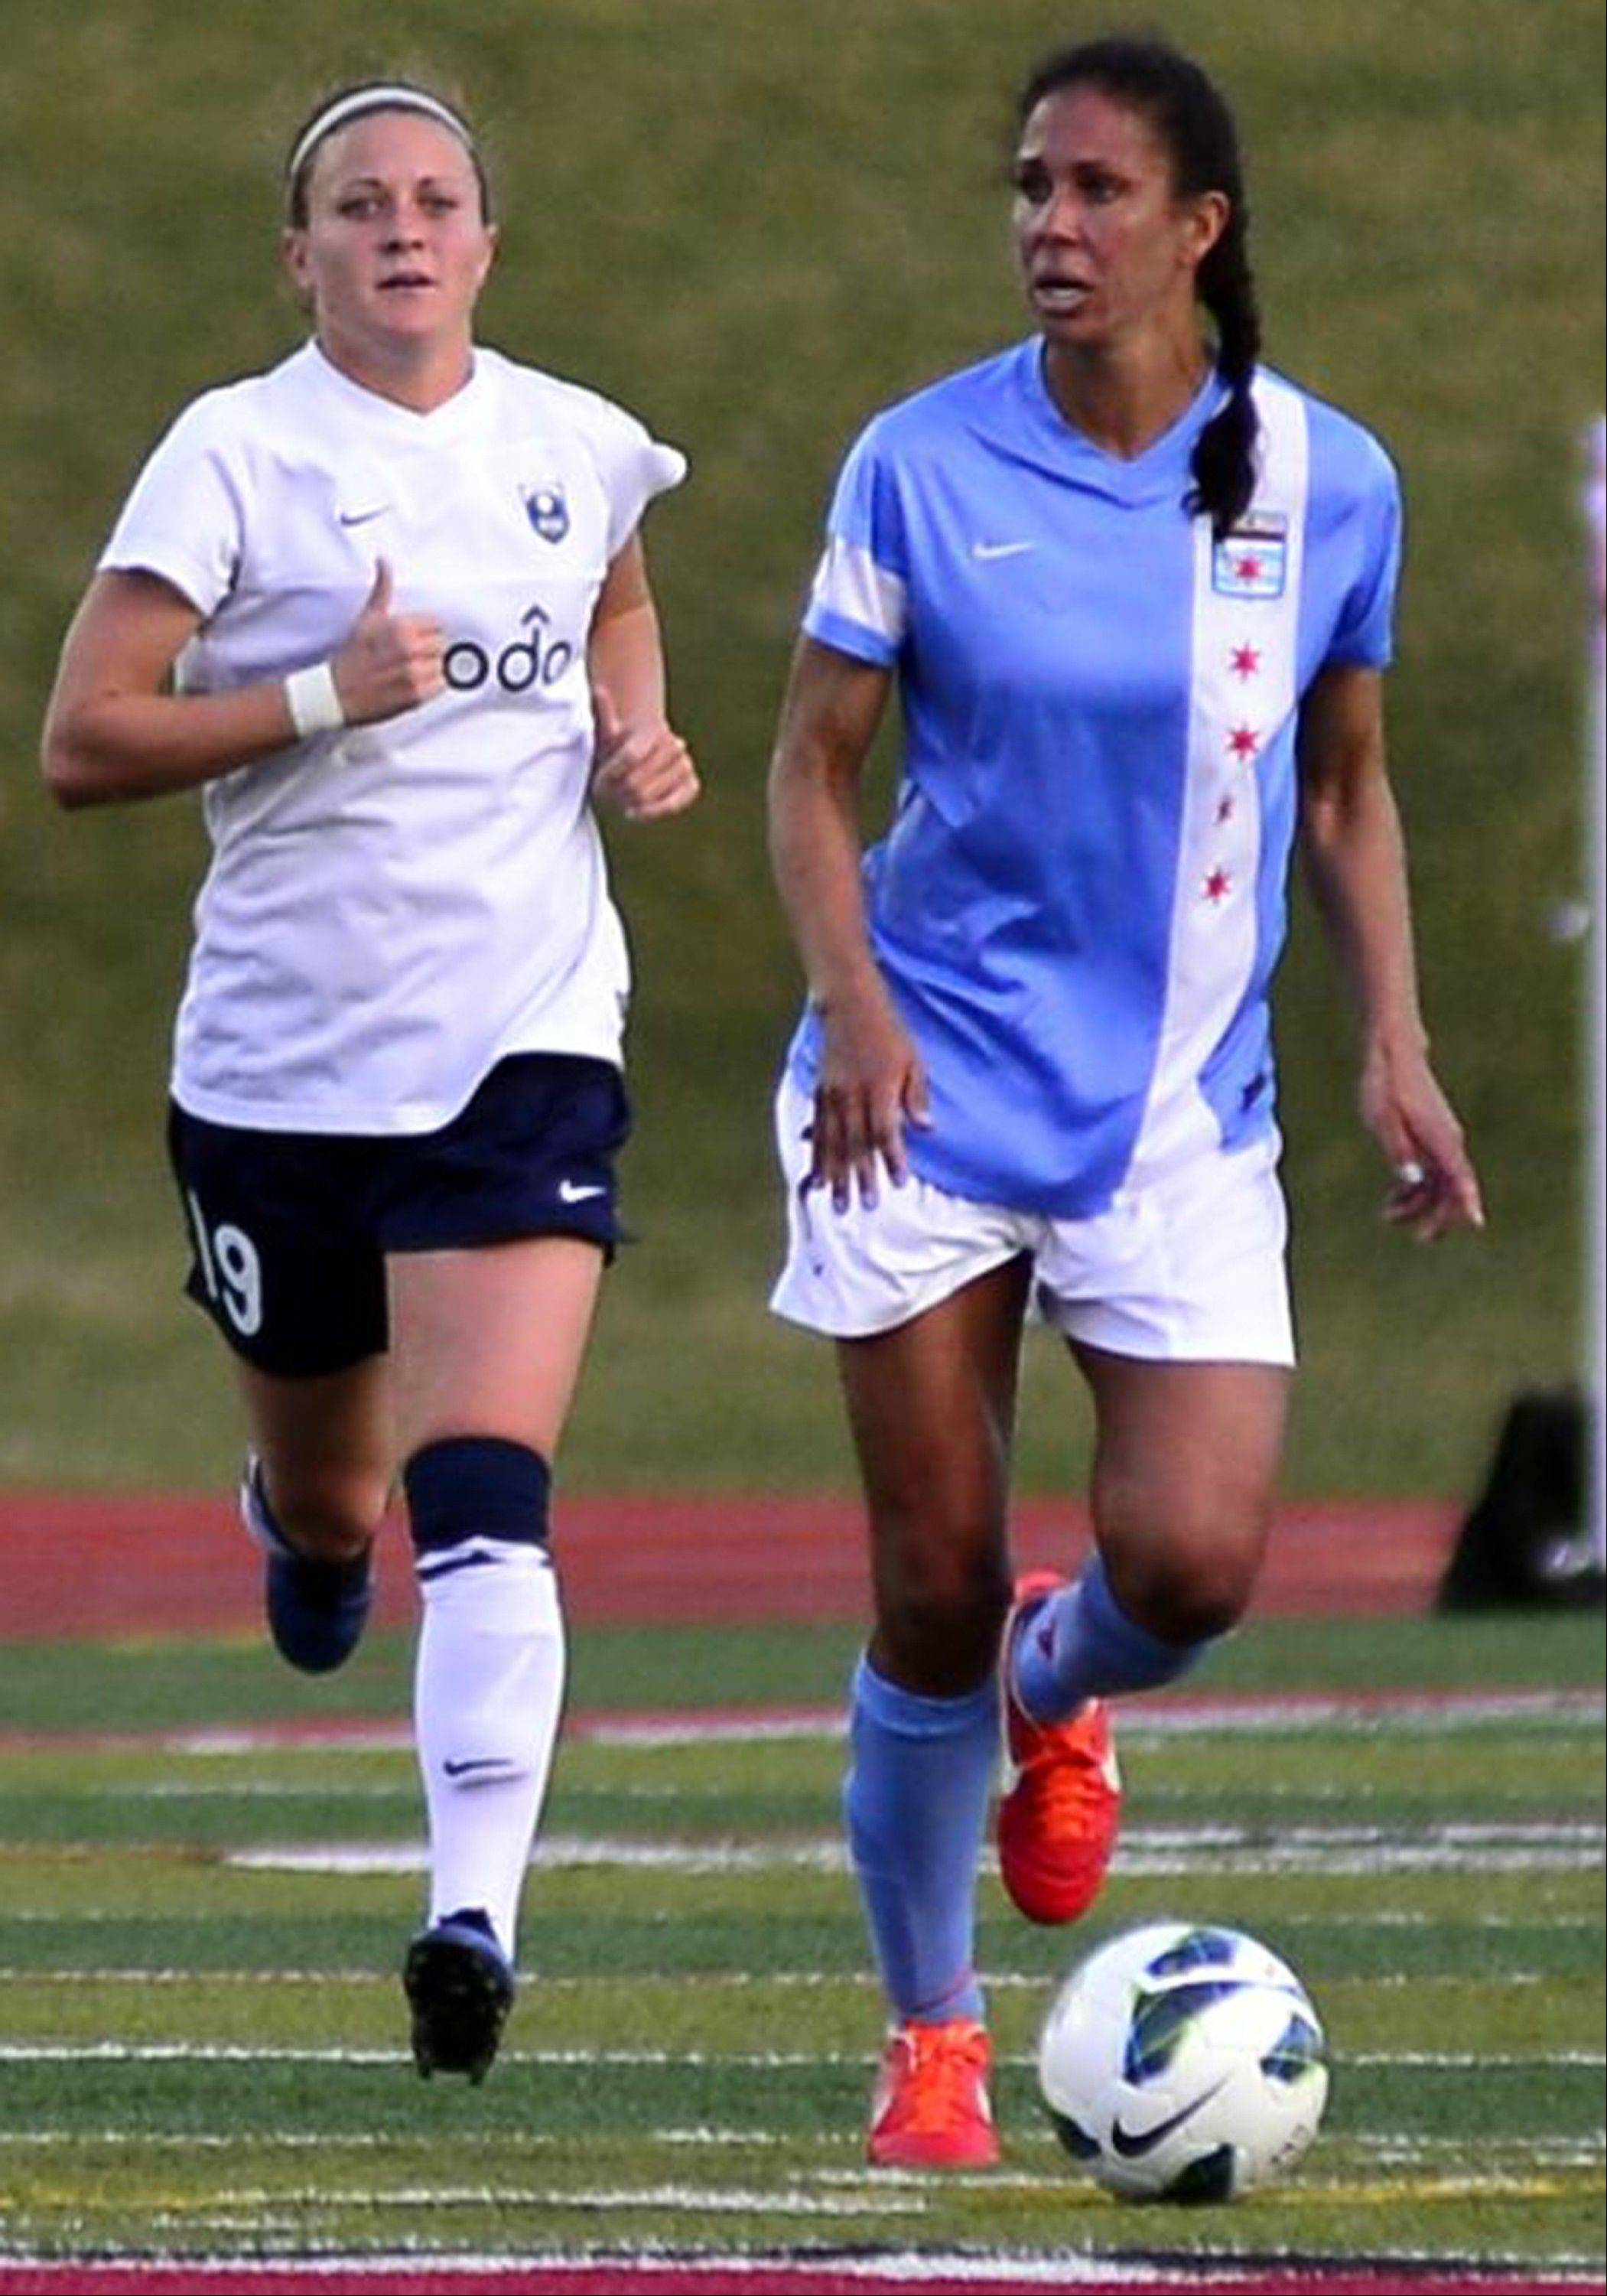 Chicago Red Stars midfielder Shannon Boxx, at right advancing the ball against Seattle, will undergo arthroscopic surgery on her right knee. She may miss the next 4-6 weeks of the NWSL season, as well as for Team USA.